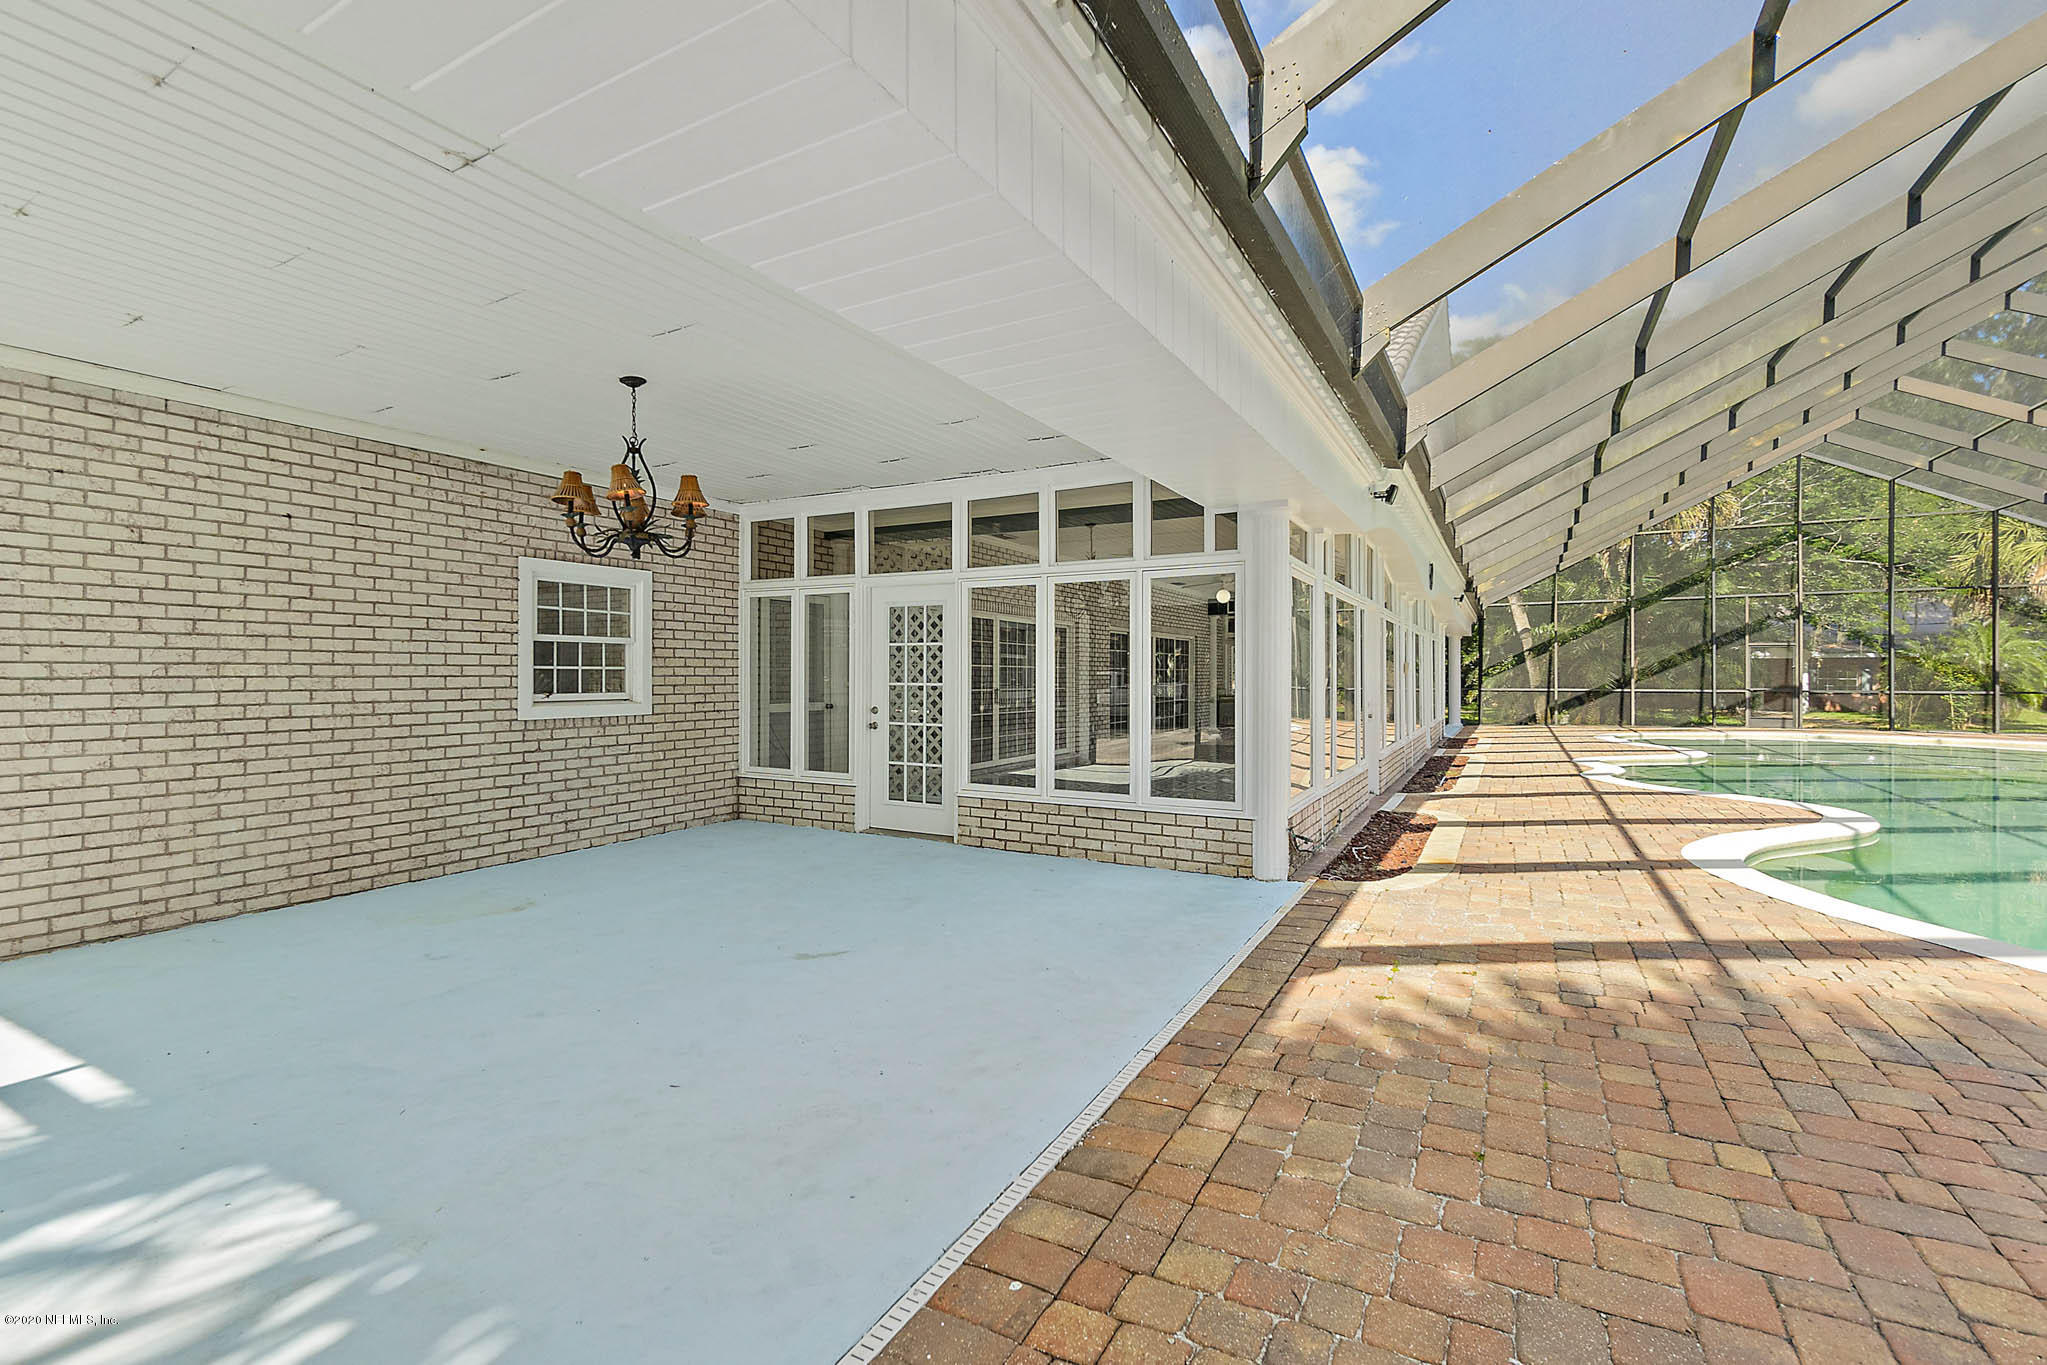 6869 STATE HWY 100, BUNNELL, FLORIDA 32110, 8 Bedrooms Bedrooms, ,5 BathroomsBathrooms,Residential,For sale,STATE HWY 100,1052465